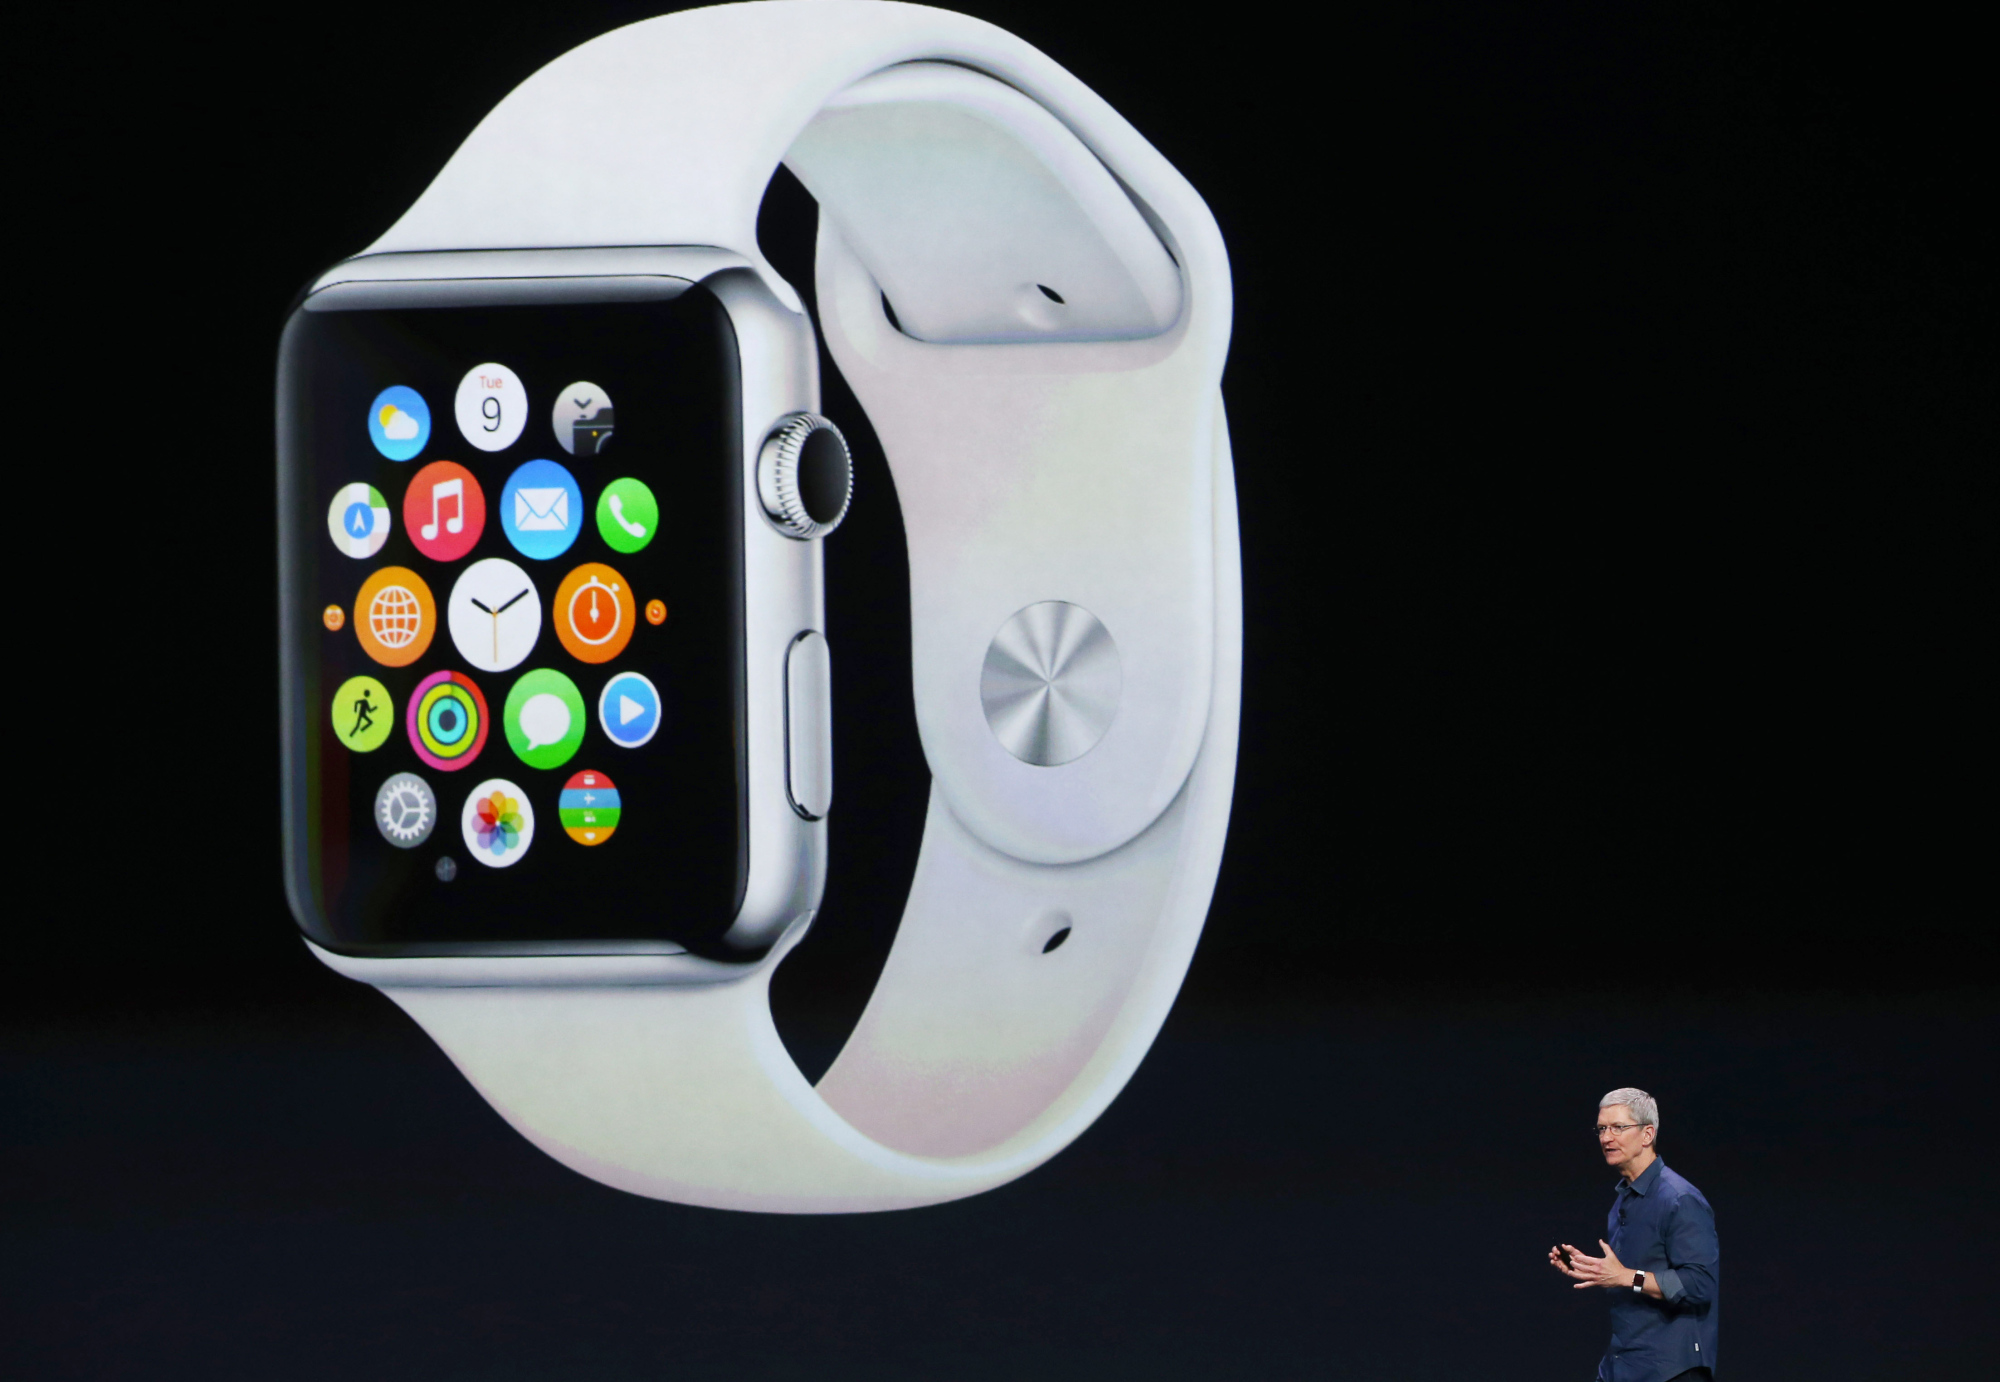 CUPERTINO, CA - SEPTEMBER 09:  Apple CEO Tim Cook announces the Apple Watch during an Apple special event at the Flint Center for the Performing Arts on September 9, 2014 in Cupertino, California. Apple unveiled the Apple Watch wearable tech and two new iPhones, the iPhone 6 and iPhone 6 Plus.  (Photo by Justin Sullivan/Getty Images)